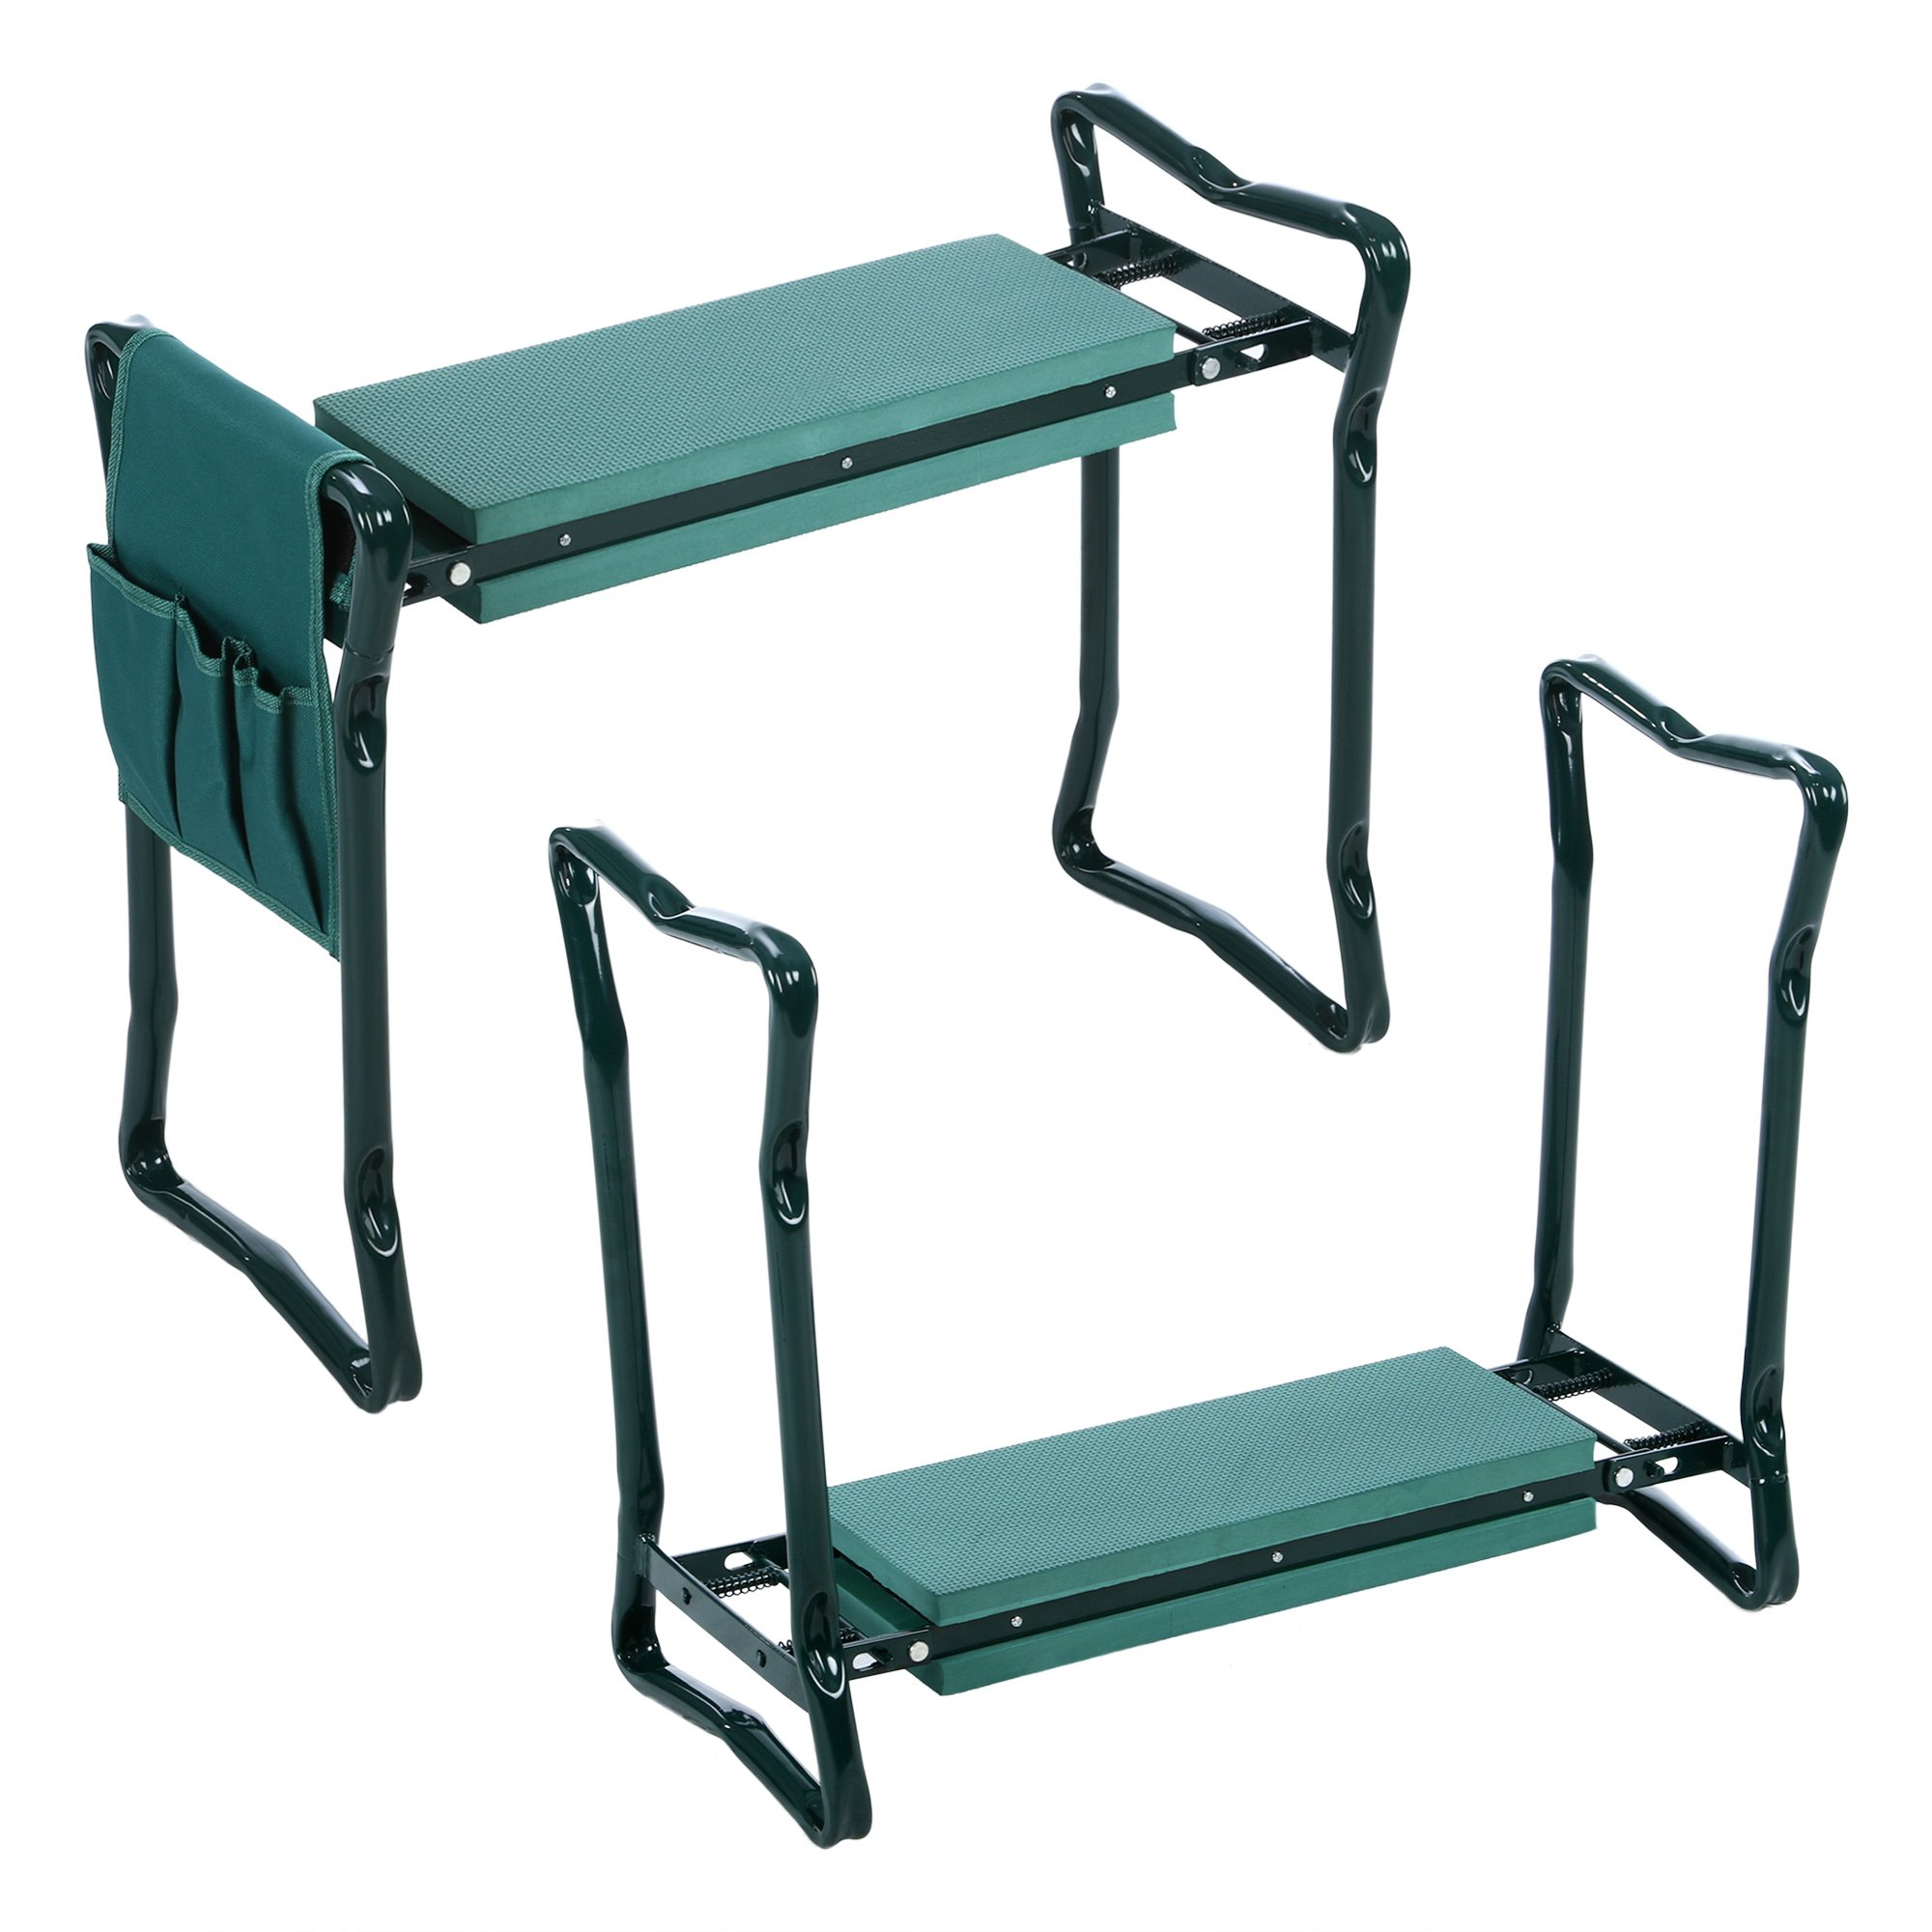 Flagup Garden Kneeler and Seat Bench, EVA Foam Pad, Sturdy and Lightweight Foldable Stool with 1 Side Tool Pouch